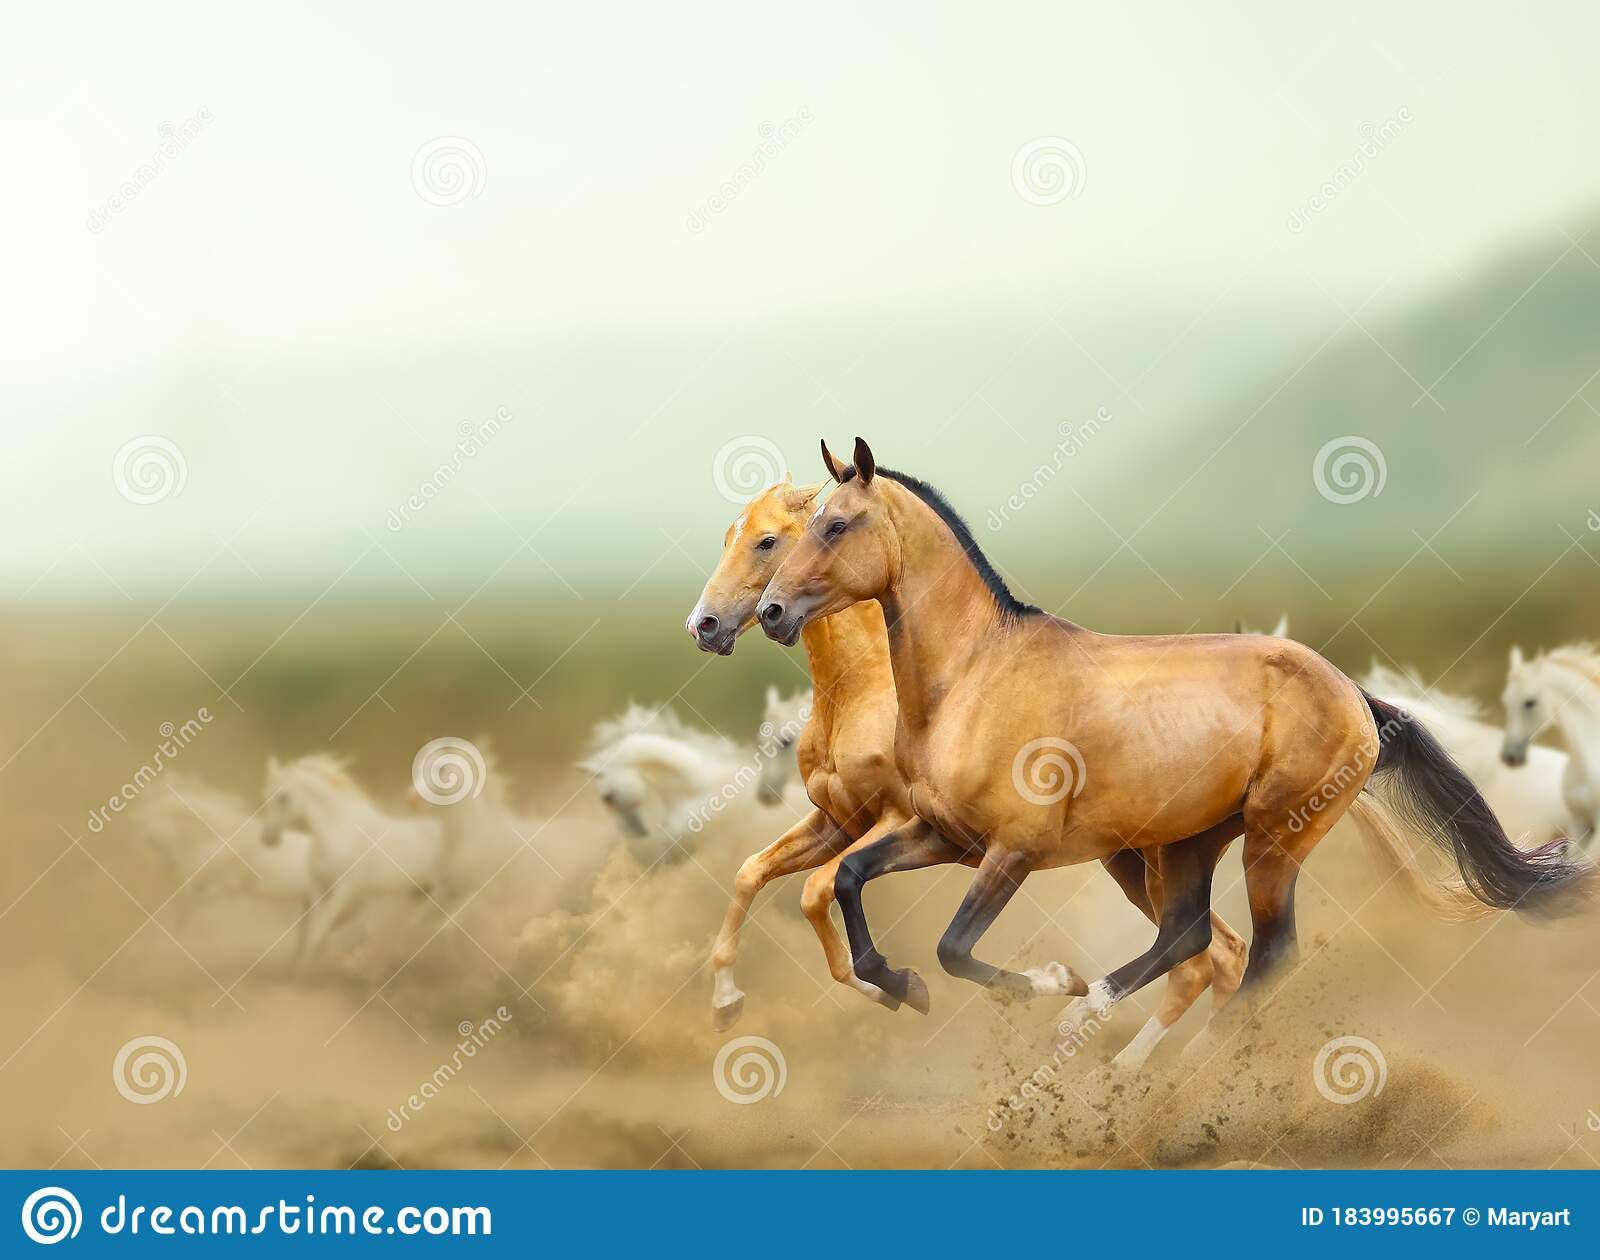 Beautiful Wild Horses In Prairies Stock Image Image Of Nature Horse 183995667